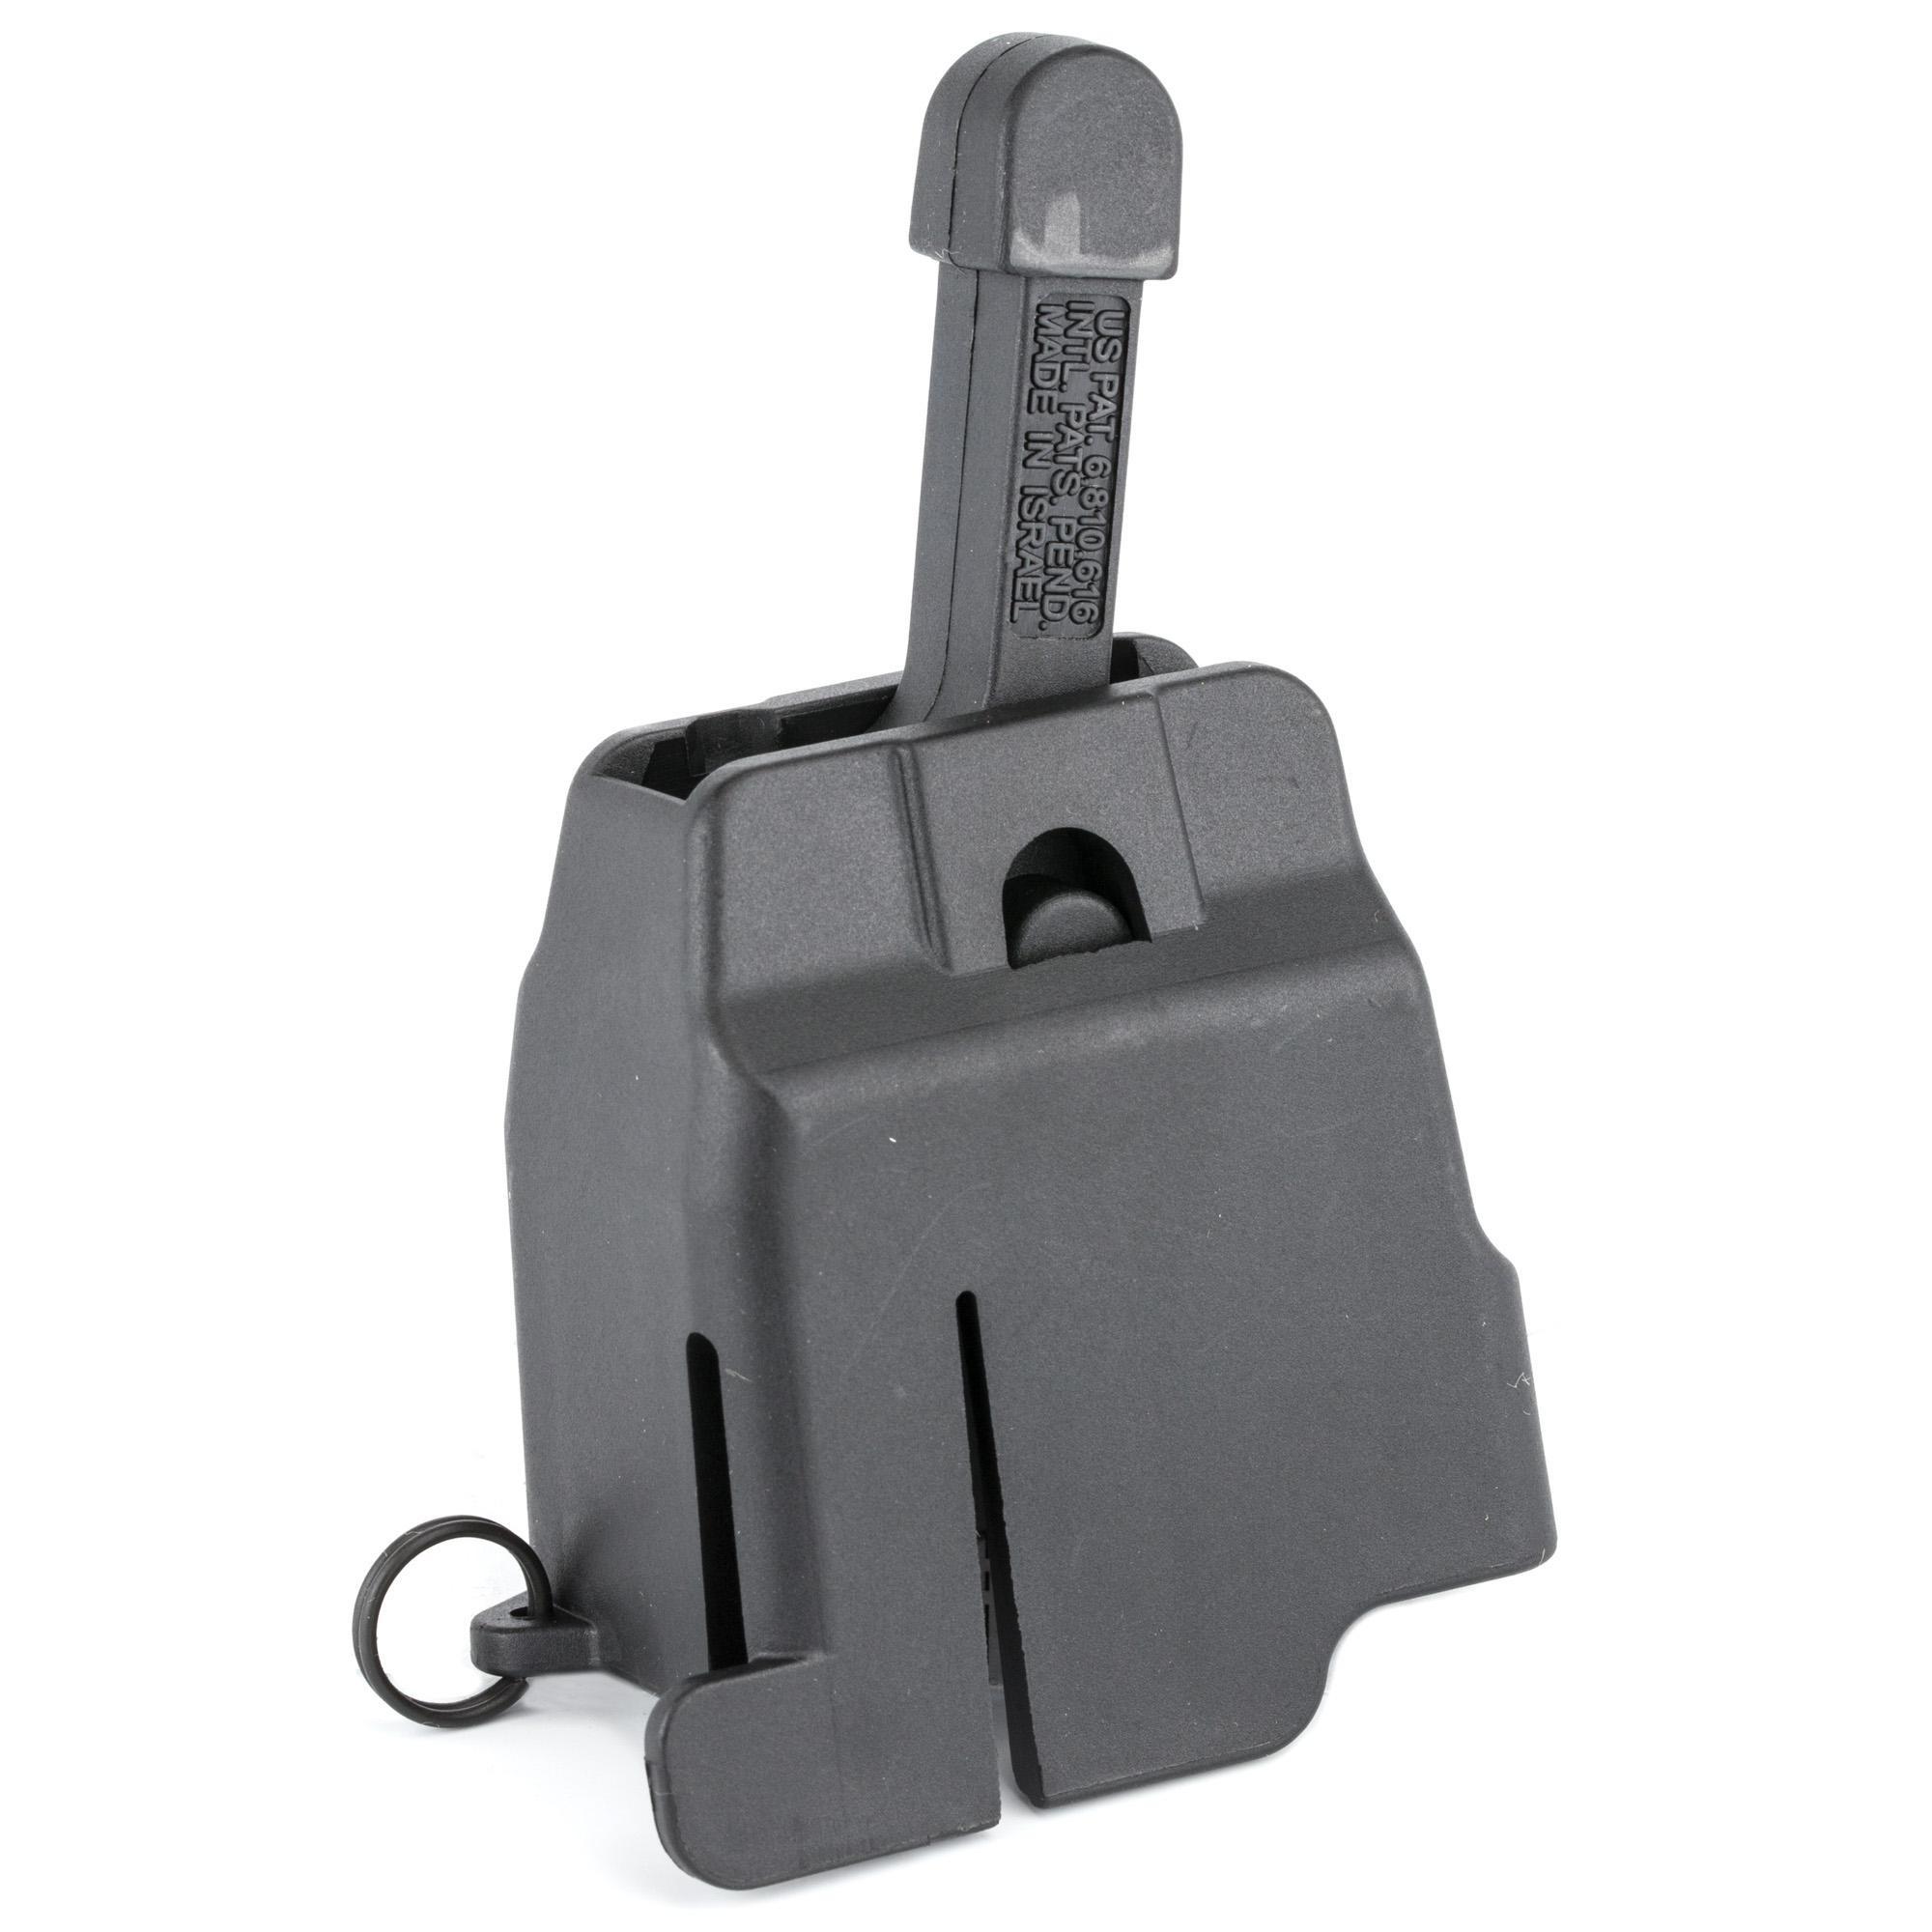 Maglula ltd. Maglula Cz Scorpion 9mm Speed Loader Mag